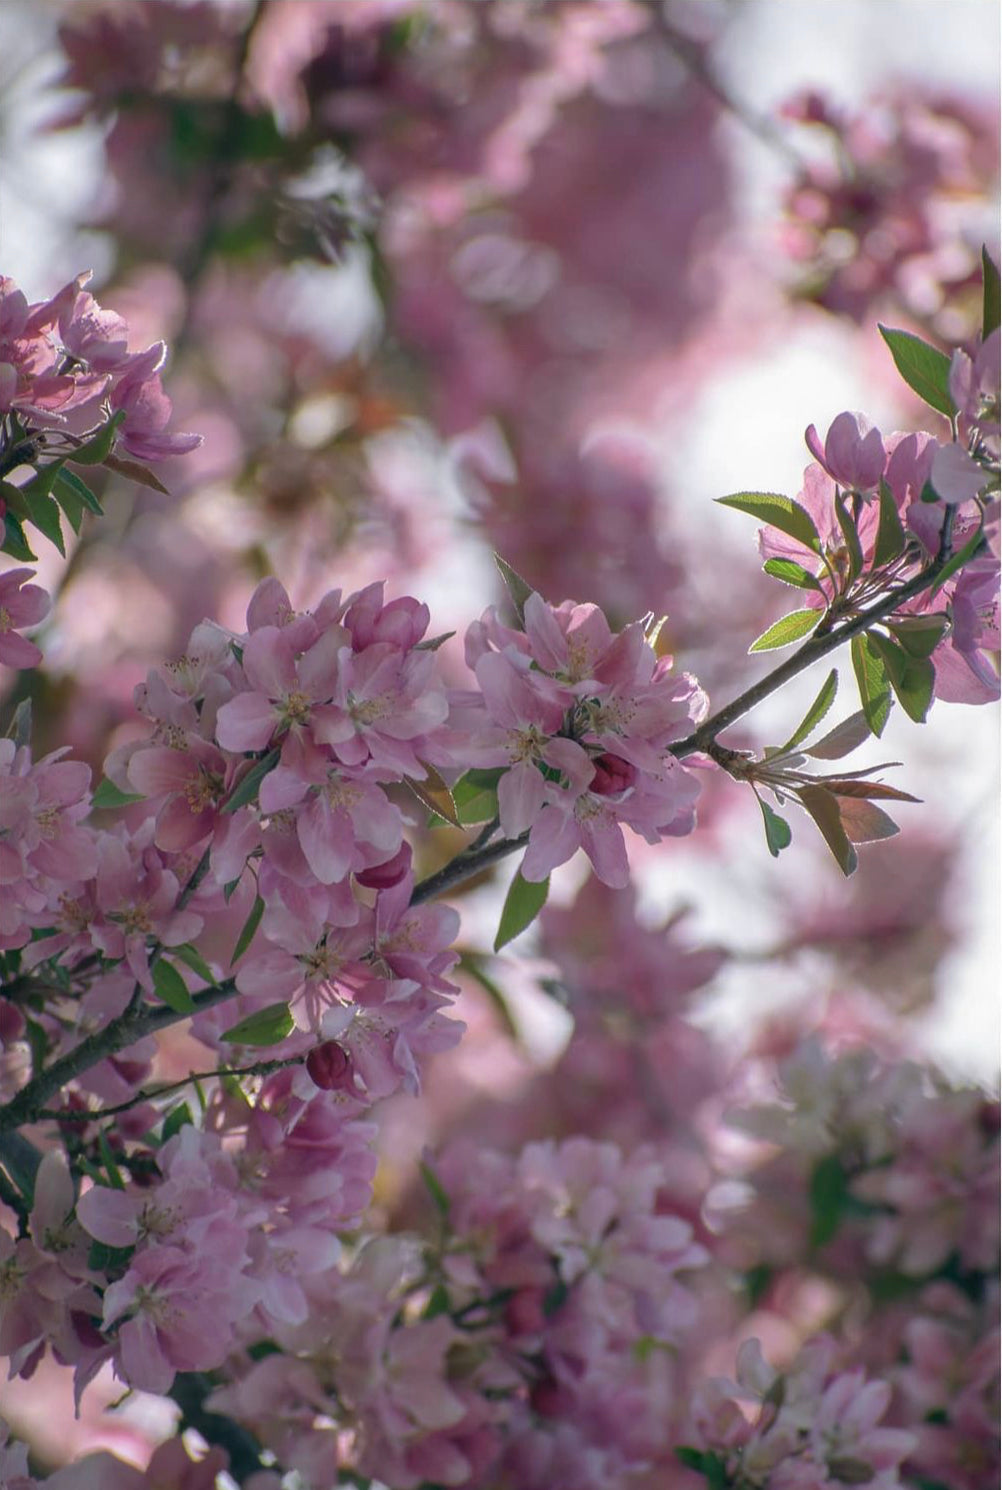 f-stop coffee #coffeeandphotos Boone cherry blossoms